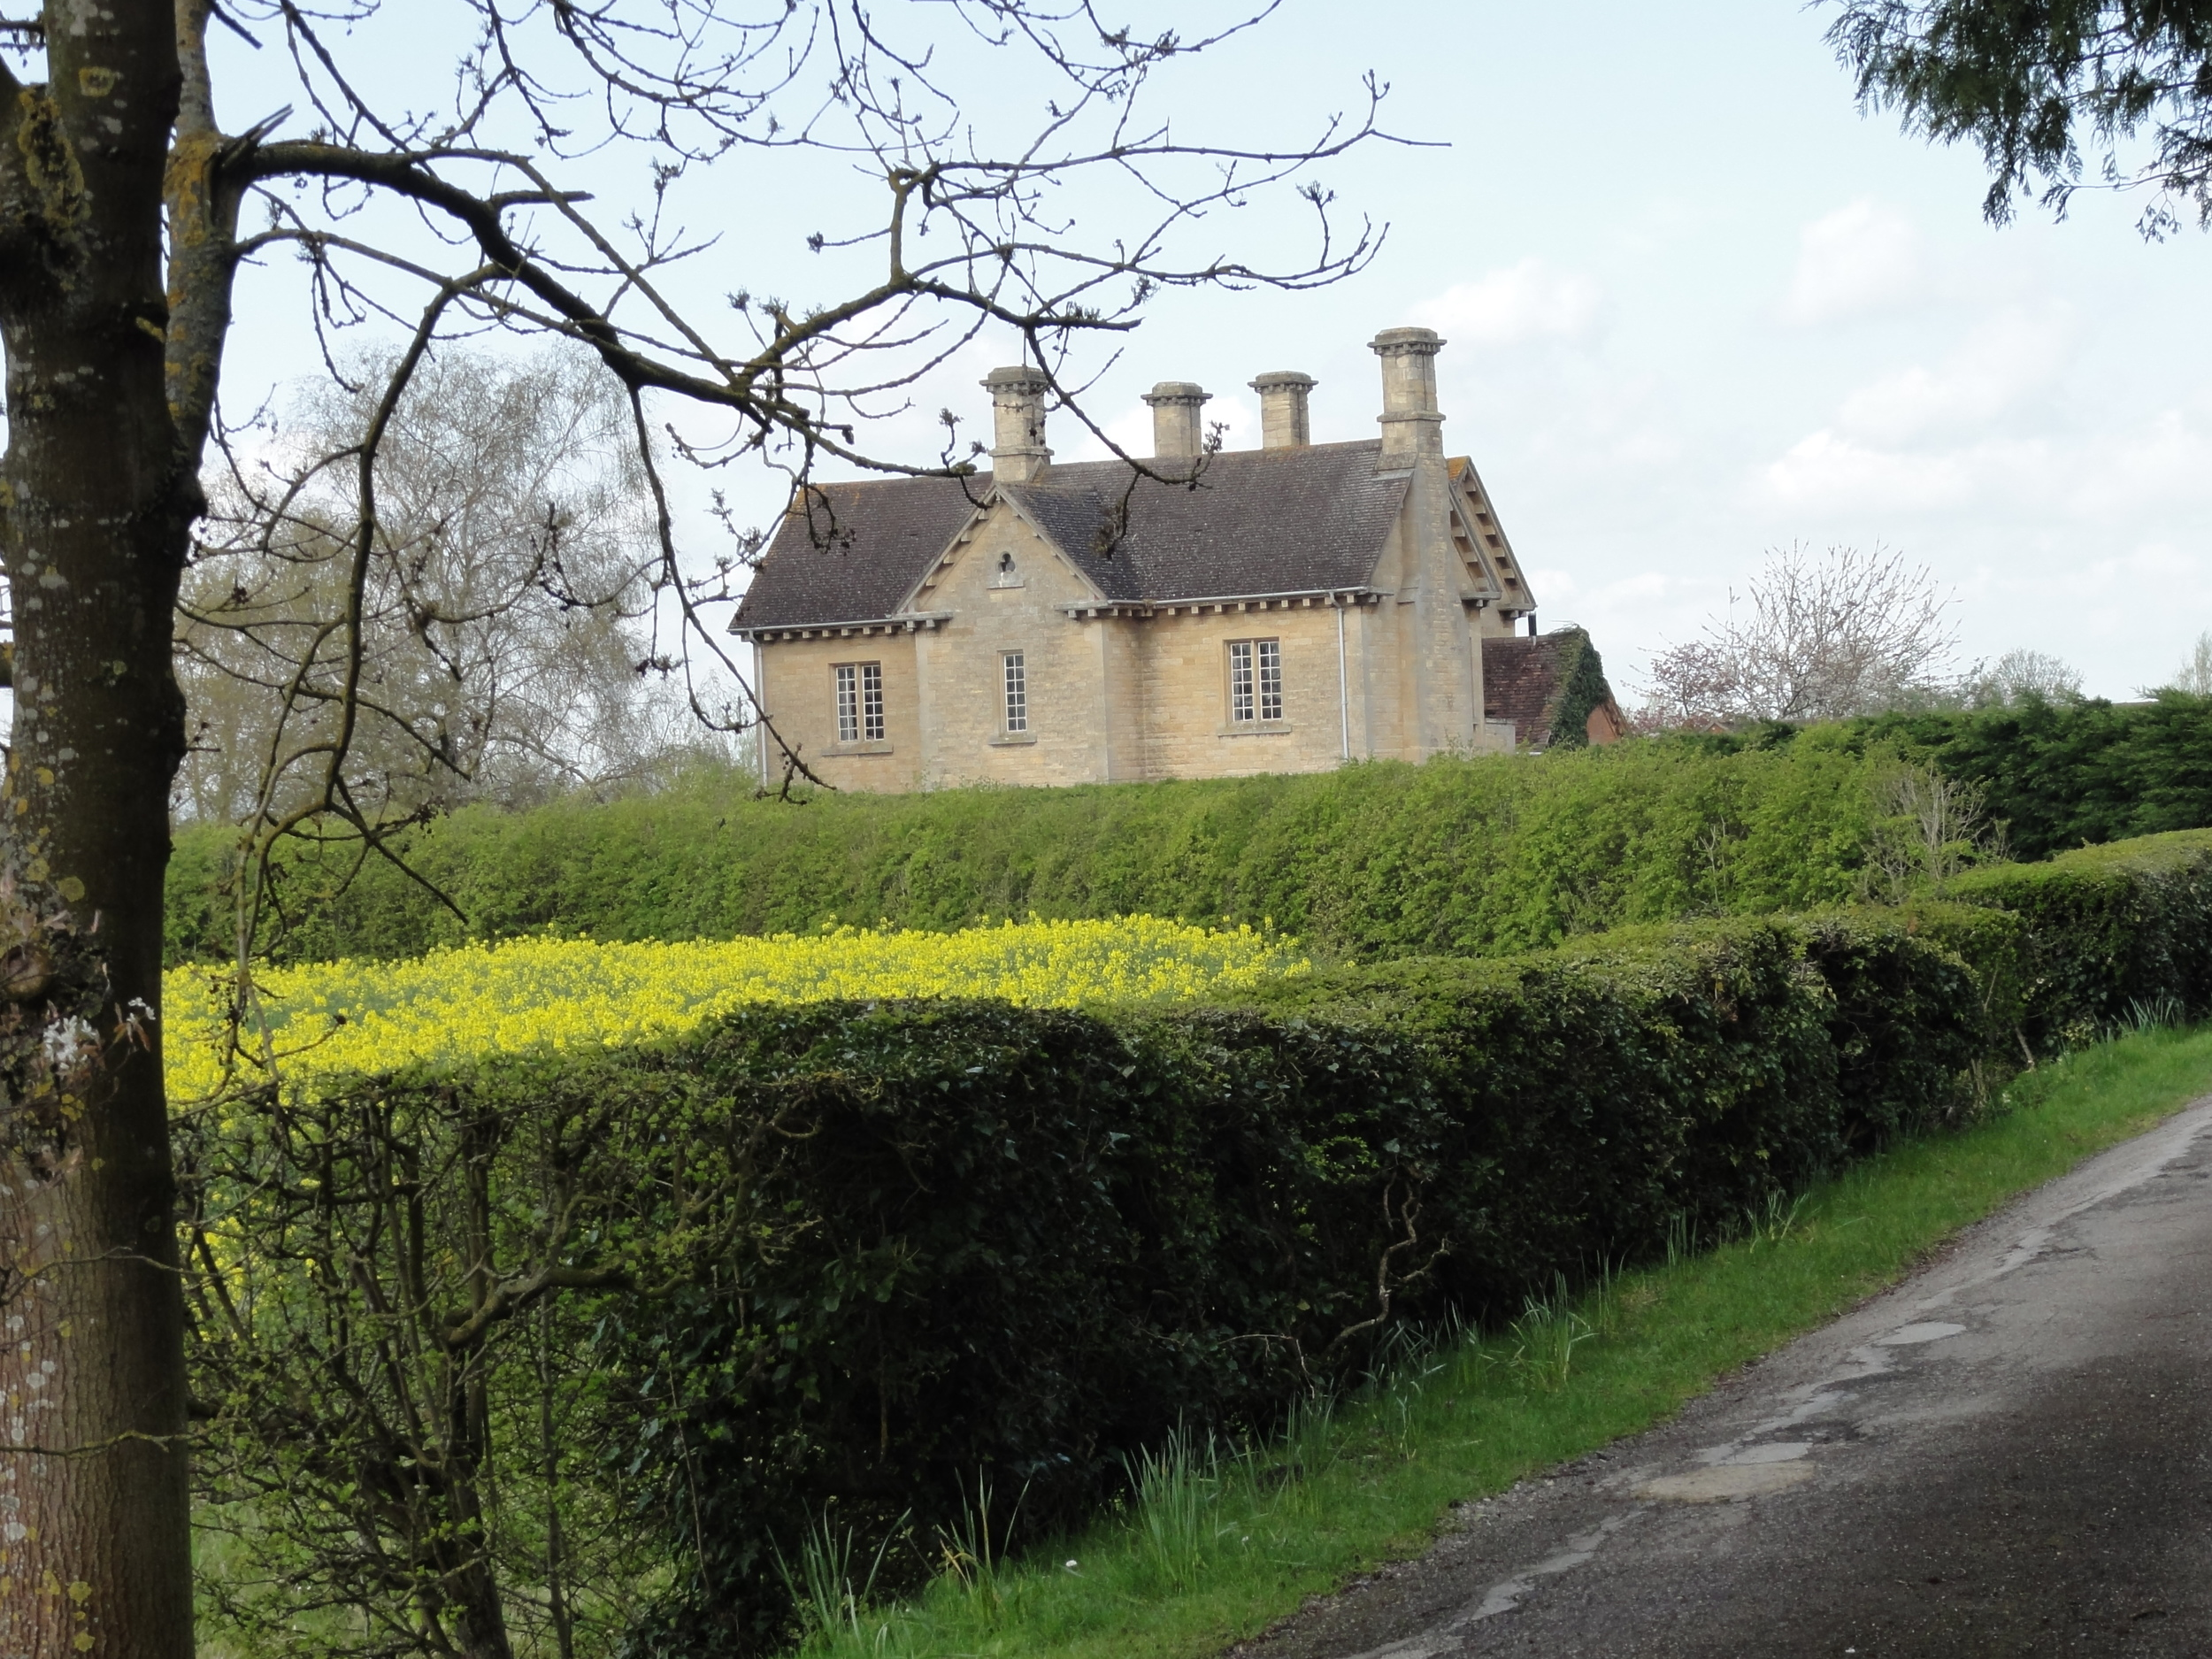 The Moretons Farmhouse viewed from the drive